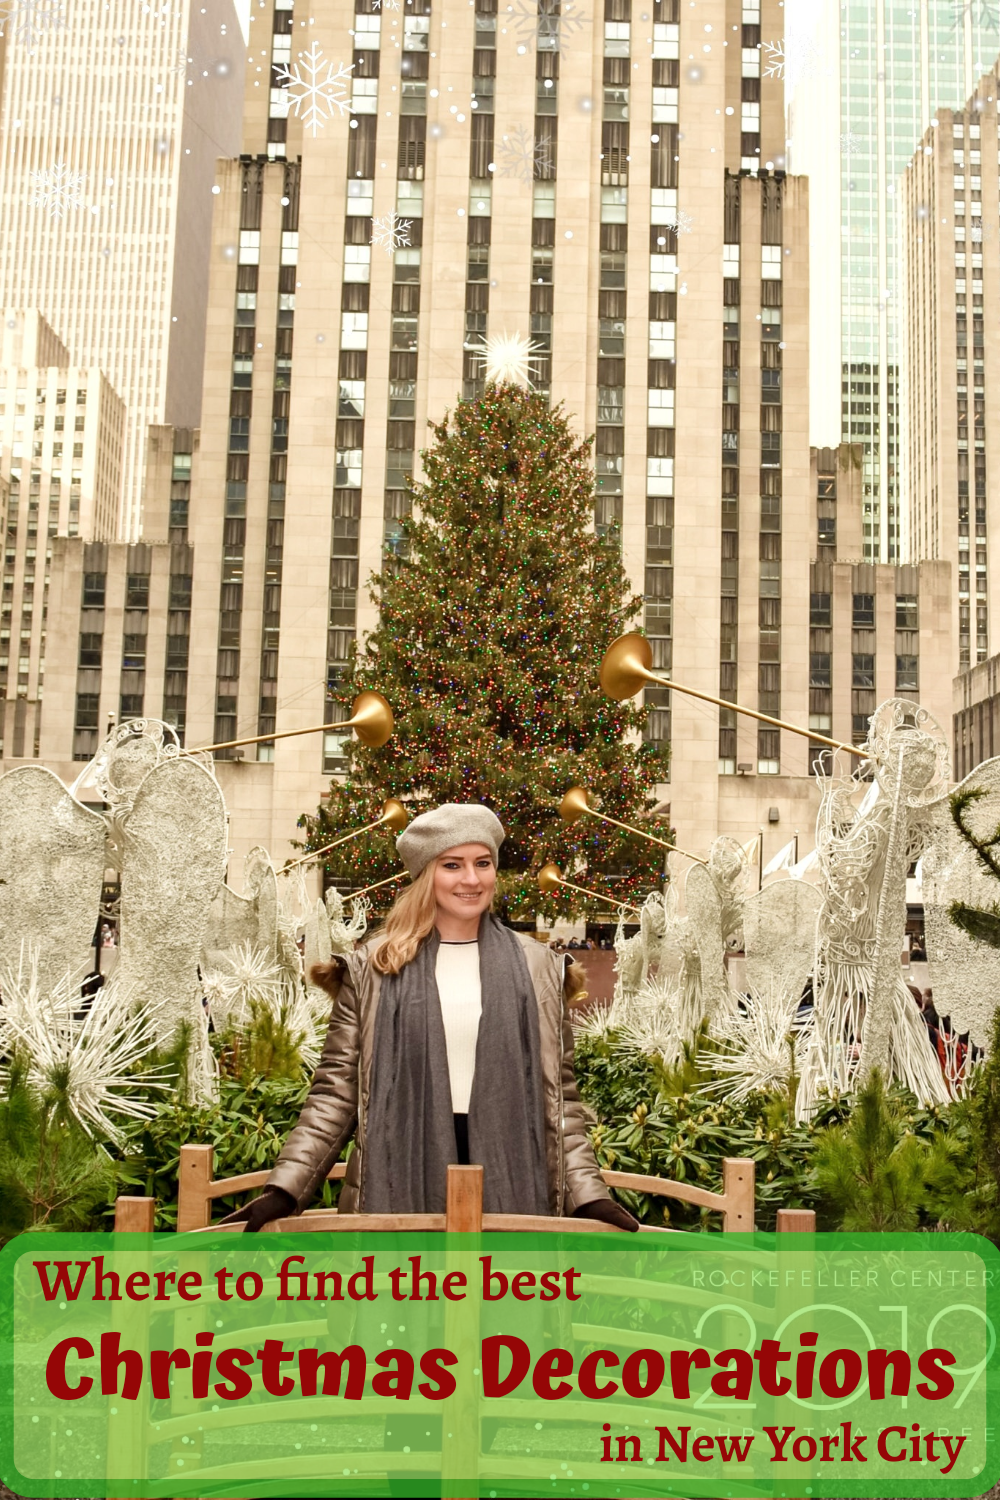 Rockefeller Center Christmas Tree 2020 Map Where to find the best Christmas Decorations in New York City